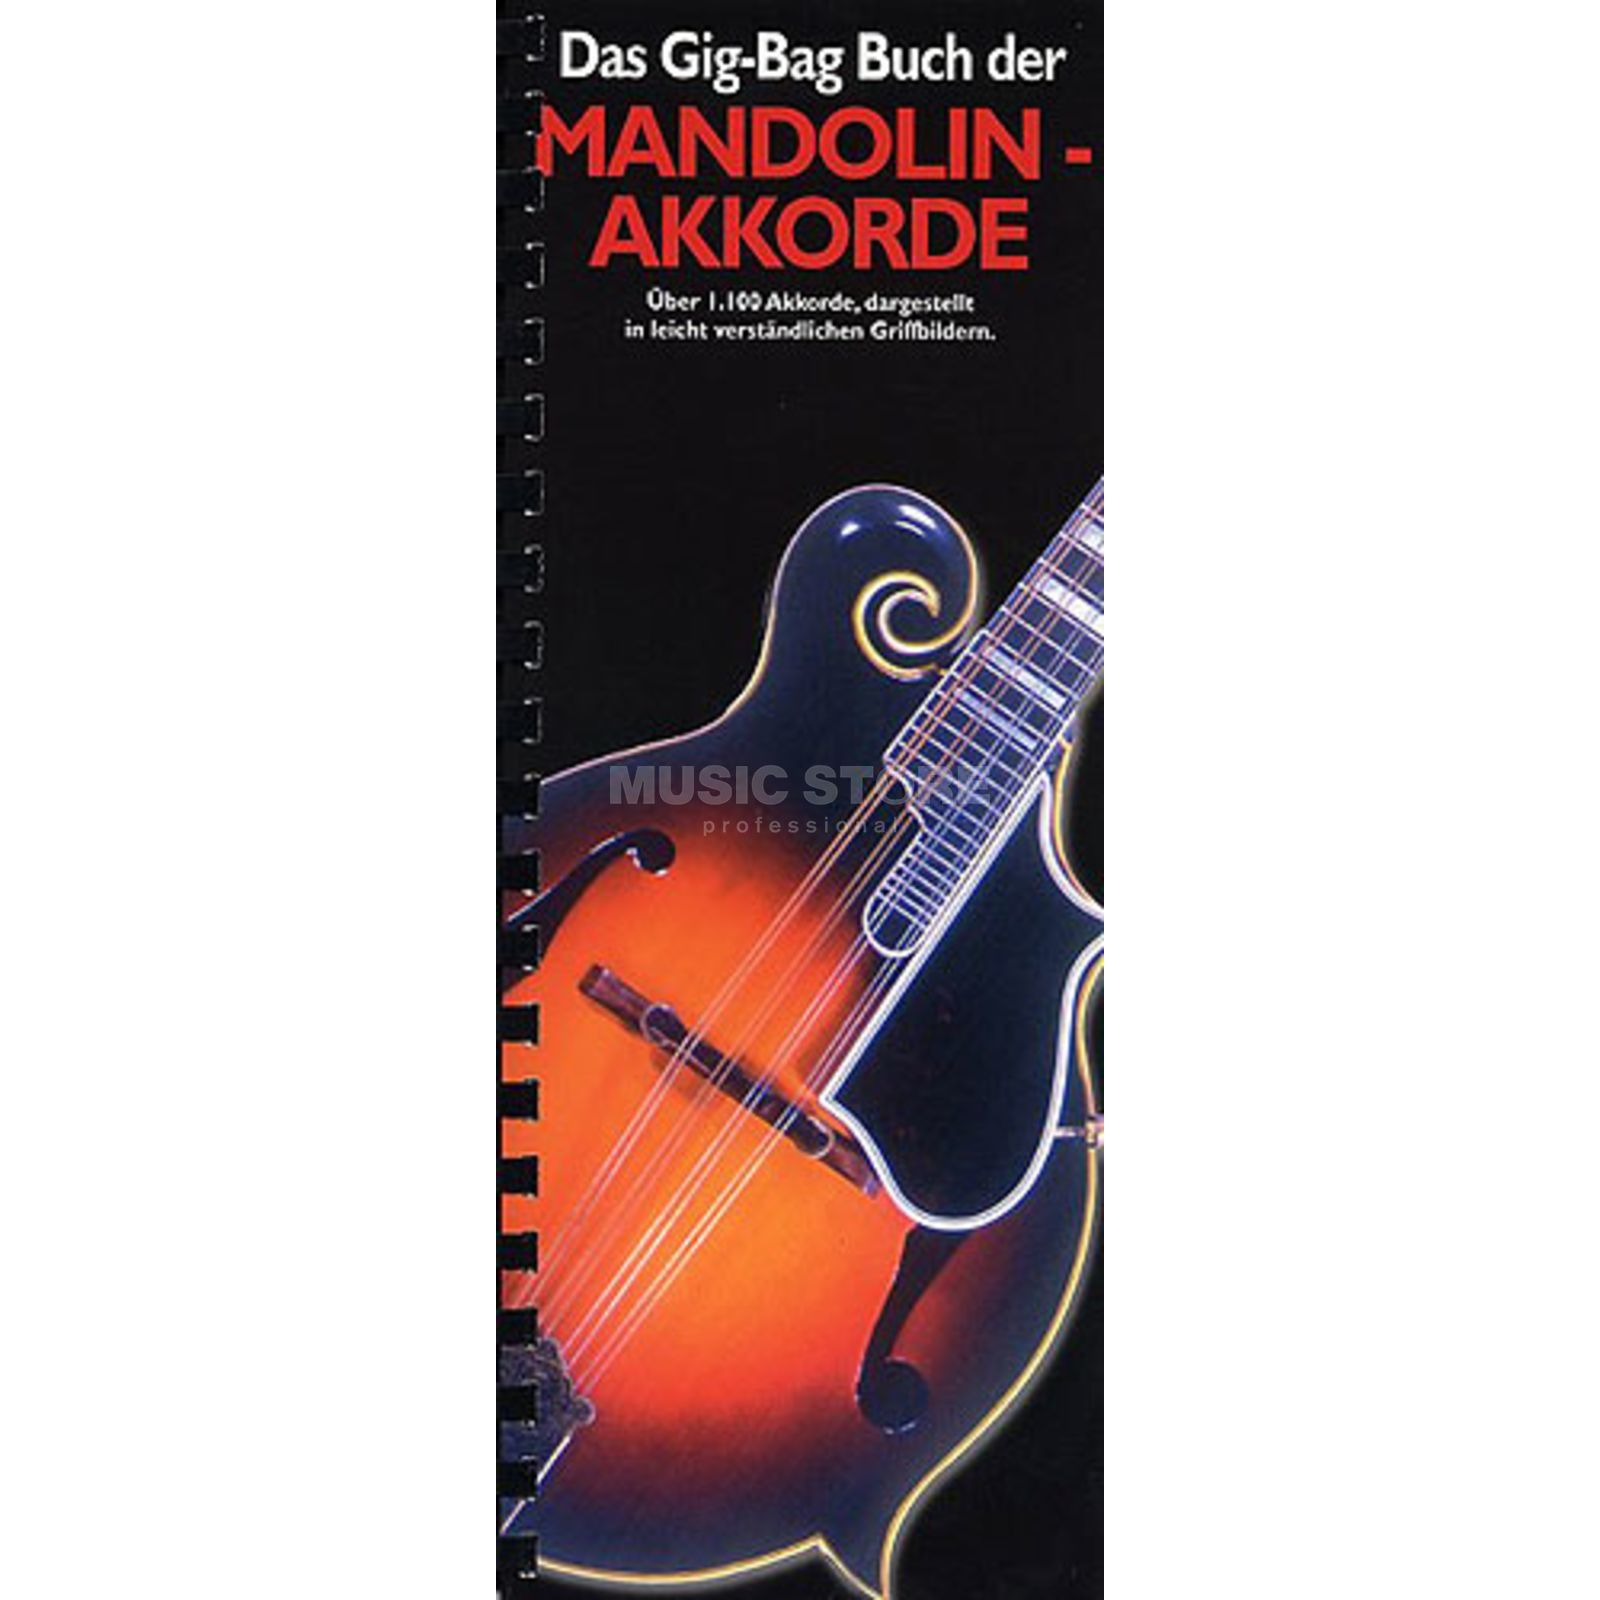 Bosworth Music Gig Bag Buch Mandolin-Akkorde  Produktbild